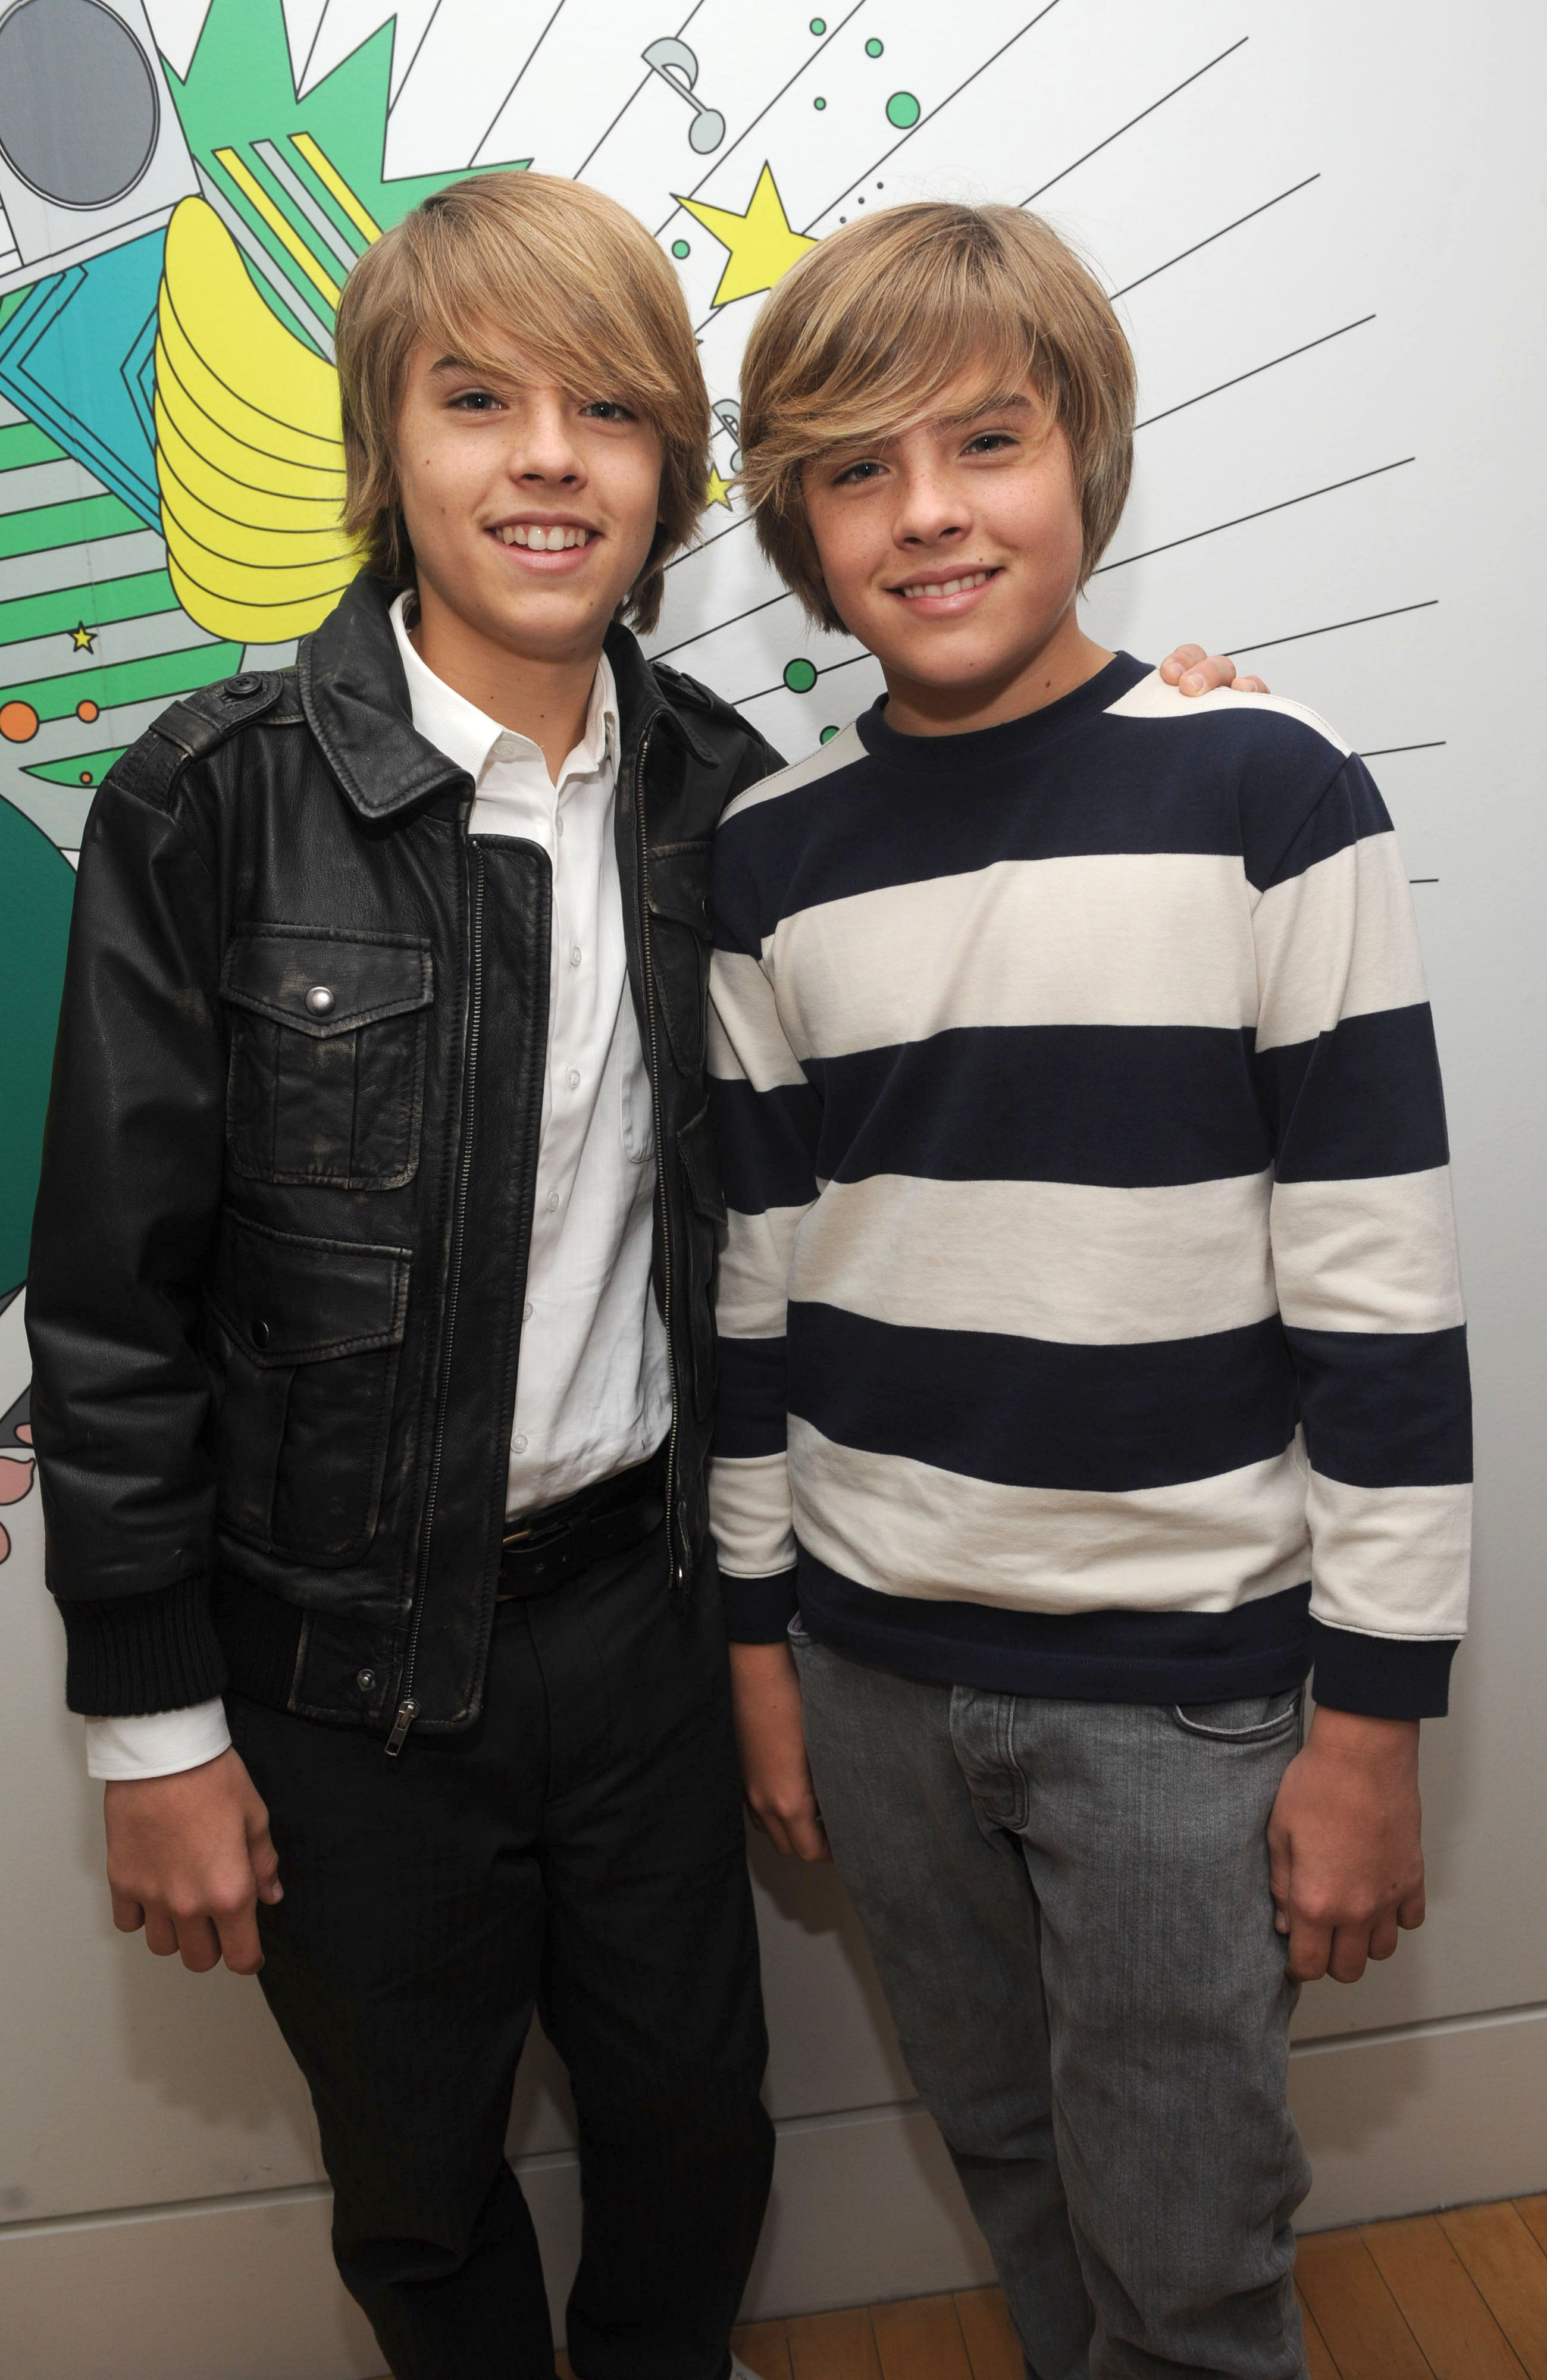 The Sprouse Twins Show Their Underwear On Television ...